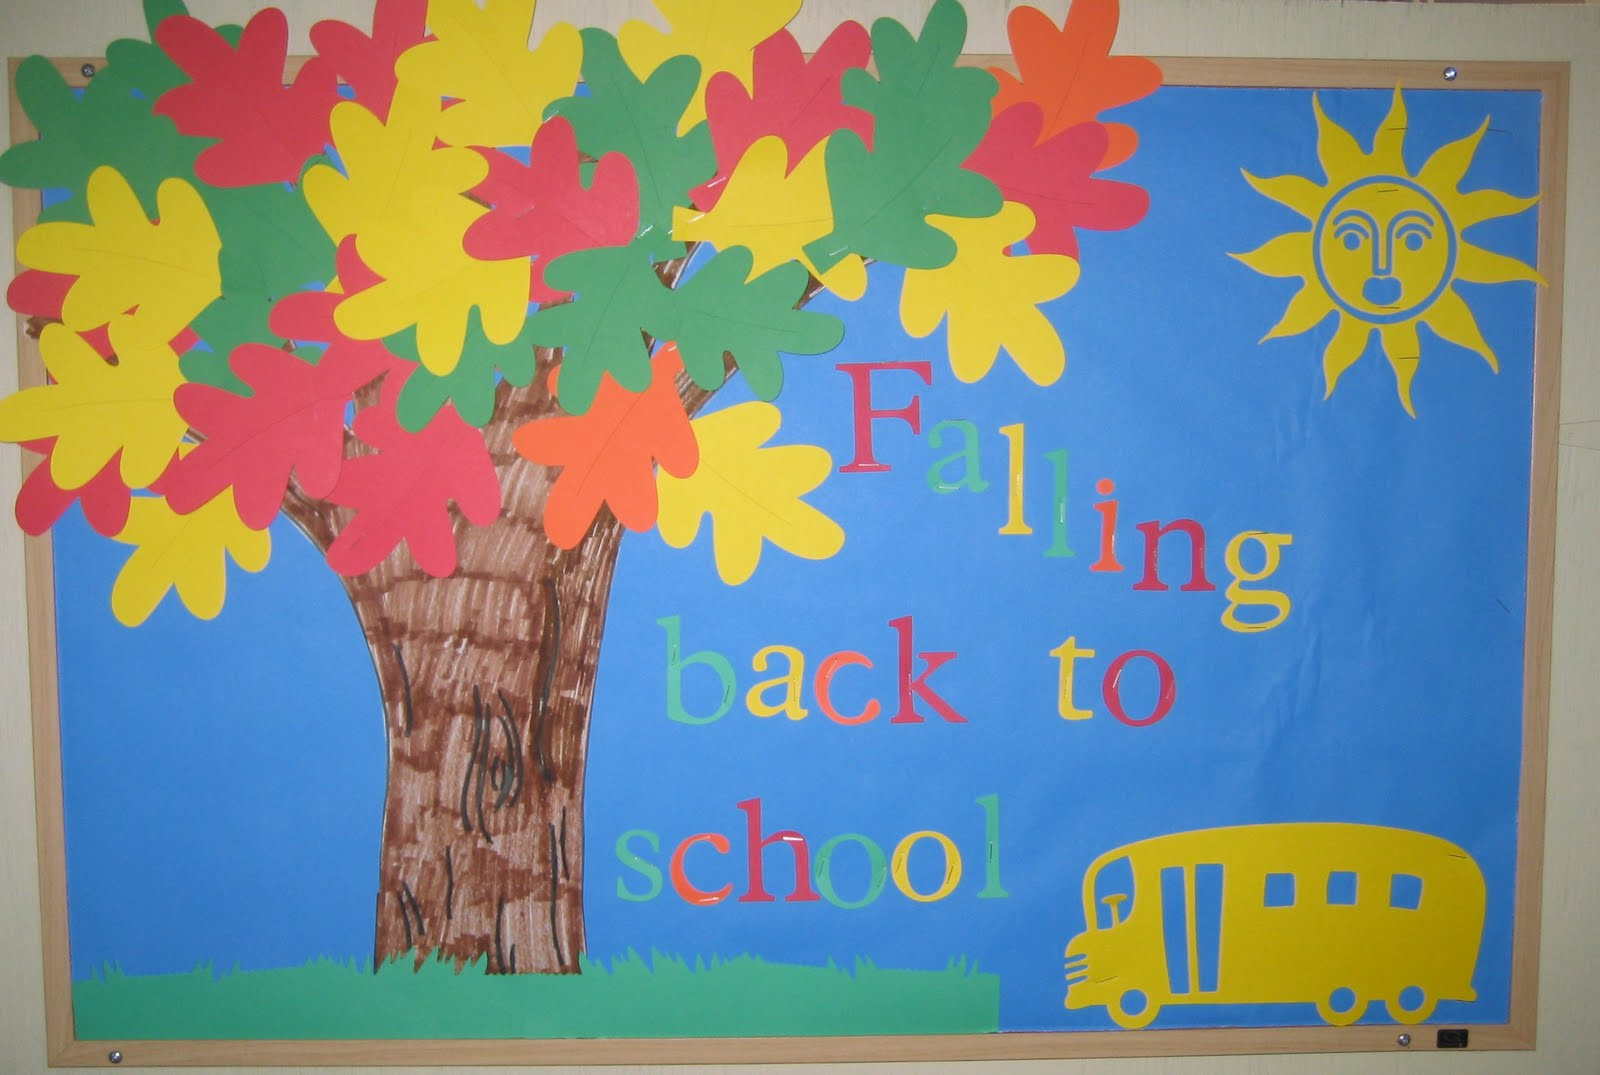 September Bulletin Board Ideas http://123learnonline.blogspot.com/2010/08/new-september-bulletin-board-idea.html